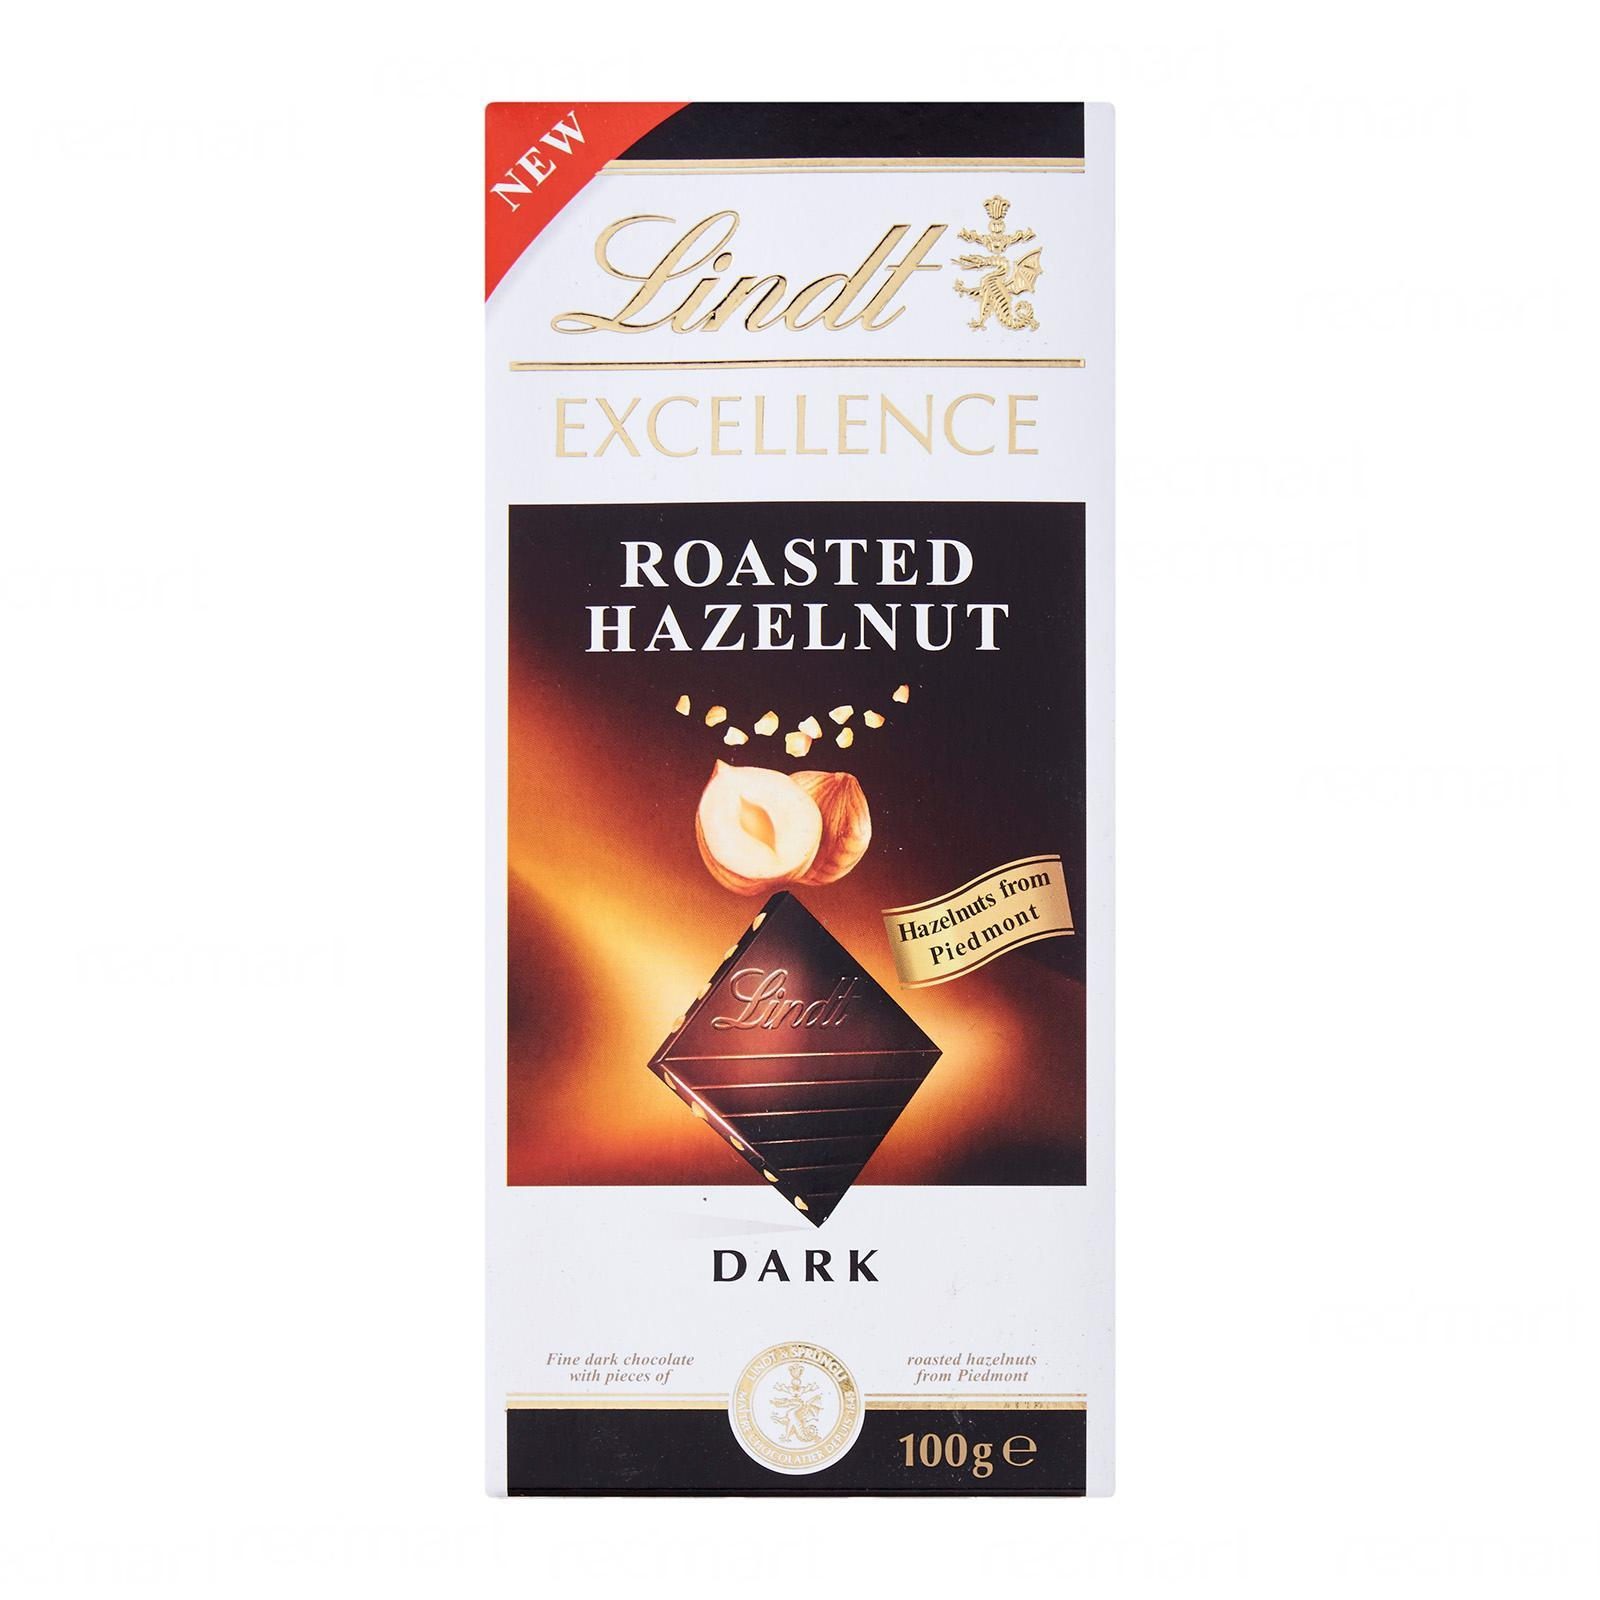 Lindt Excellence Roasted Hazelnut Dark Chocolate